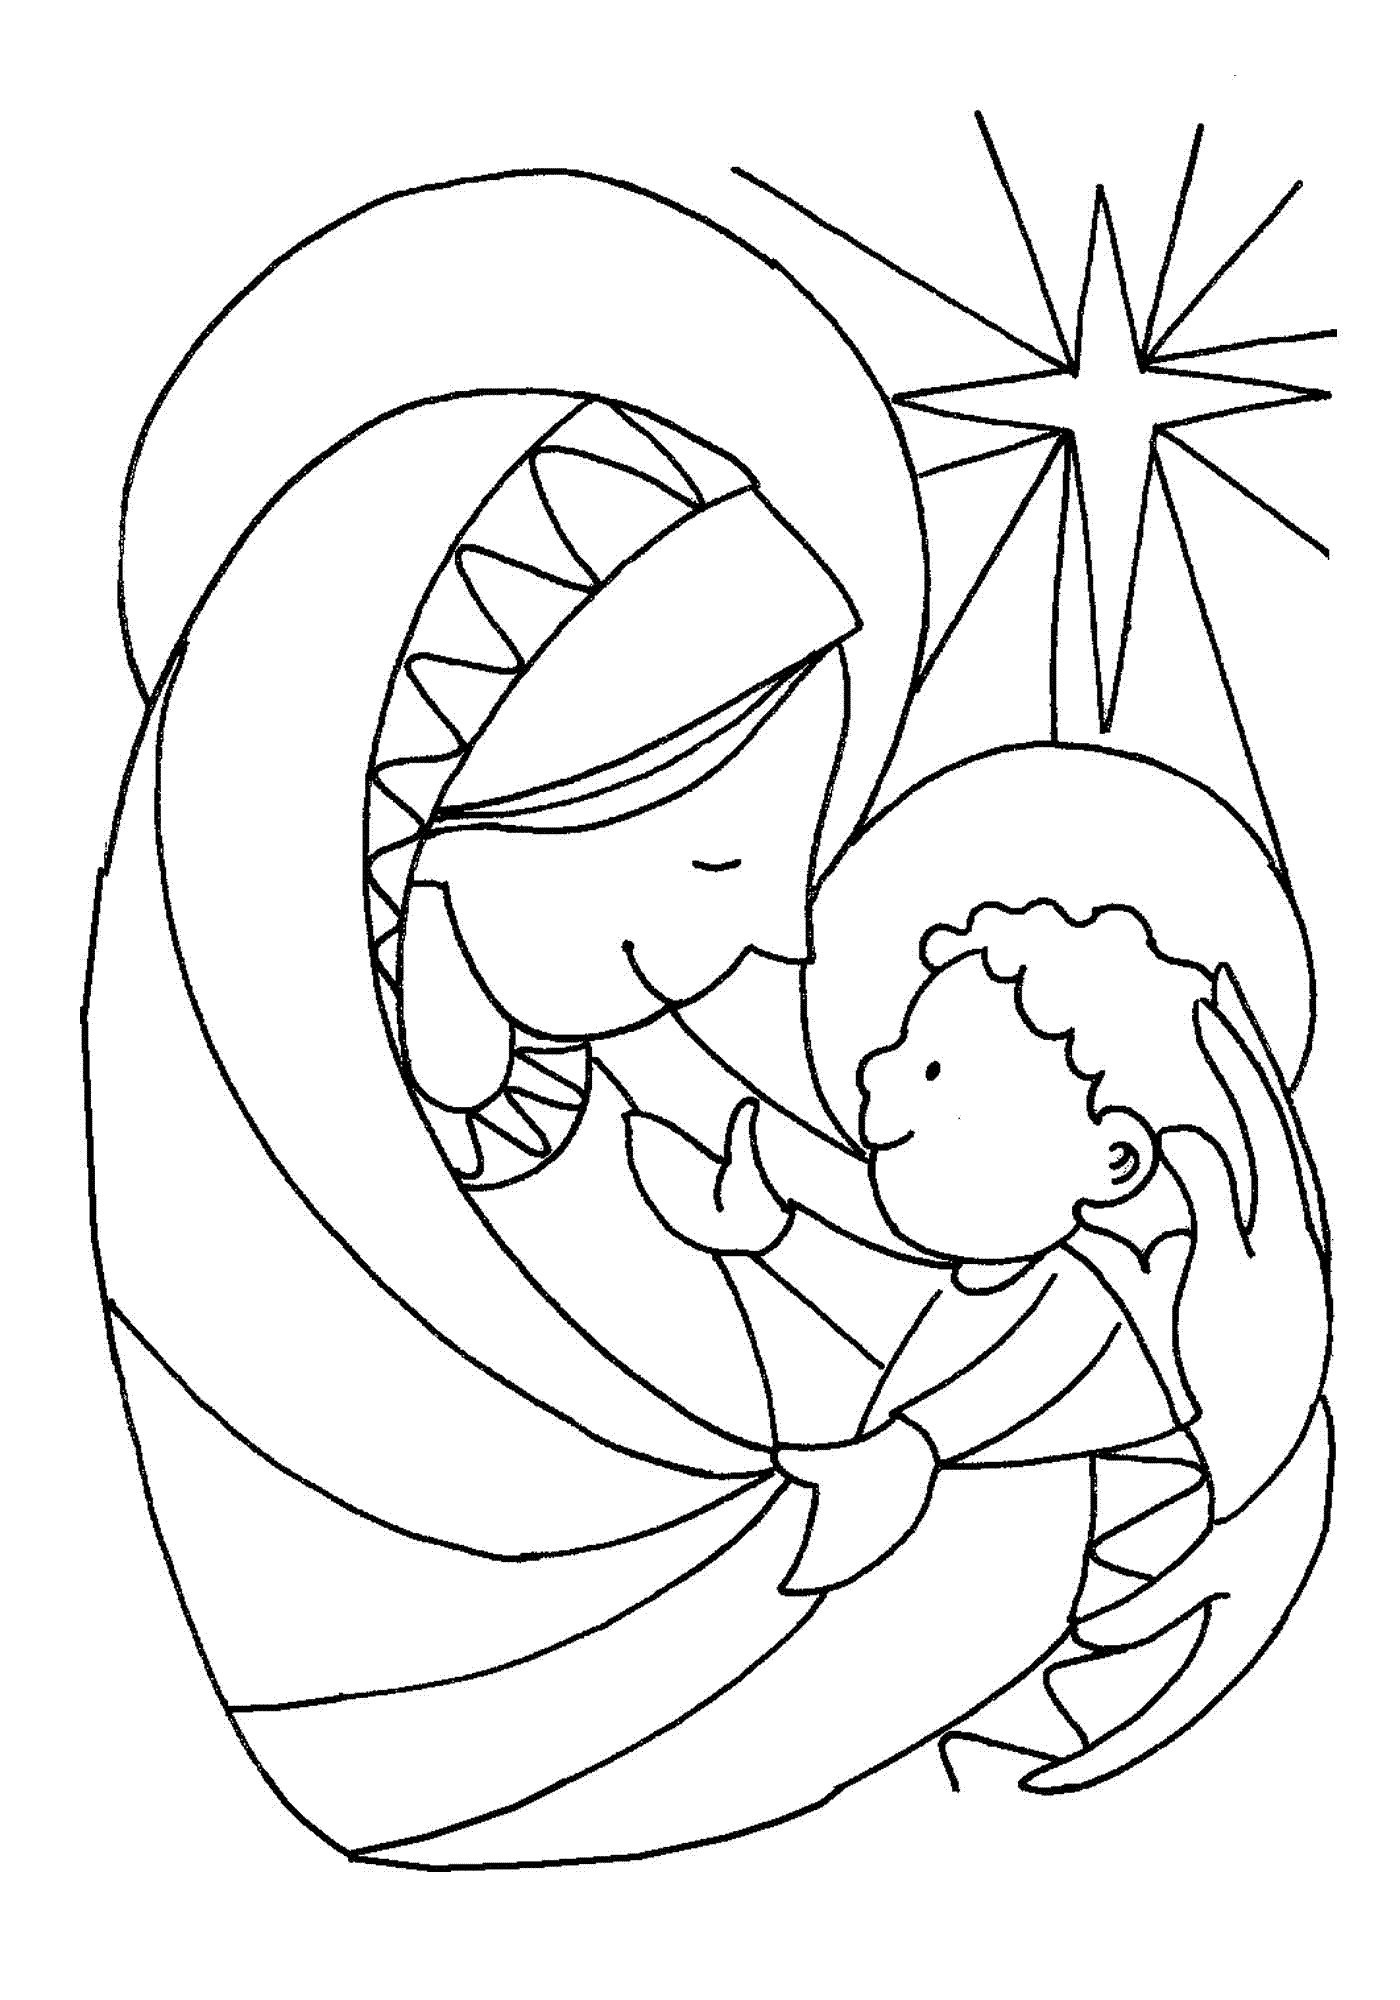 jesus walks on water coloring page - christmas childrens stories poems more